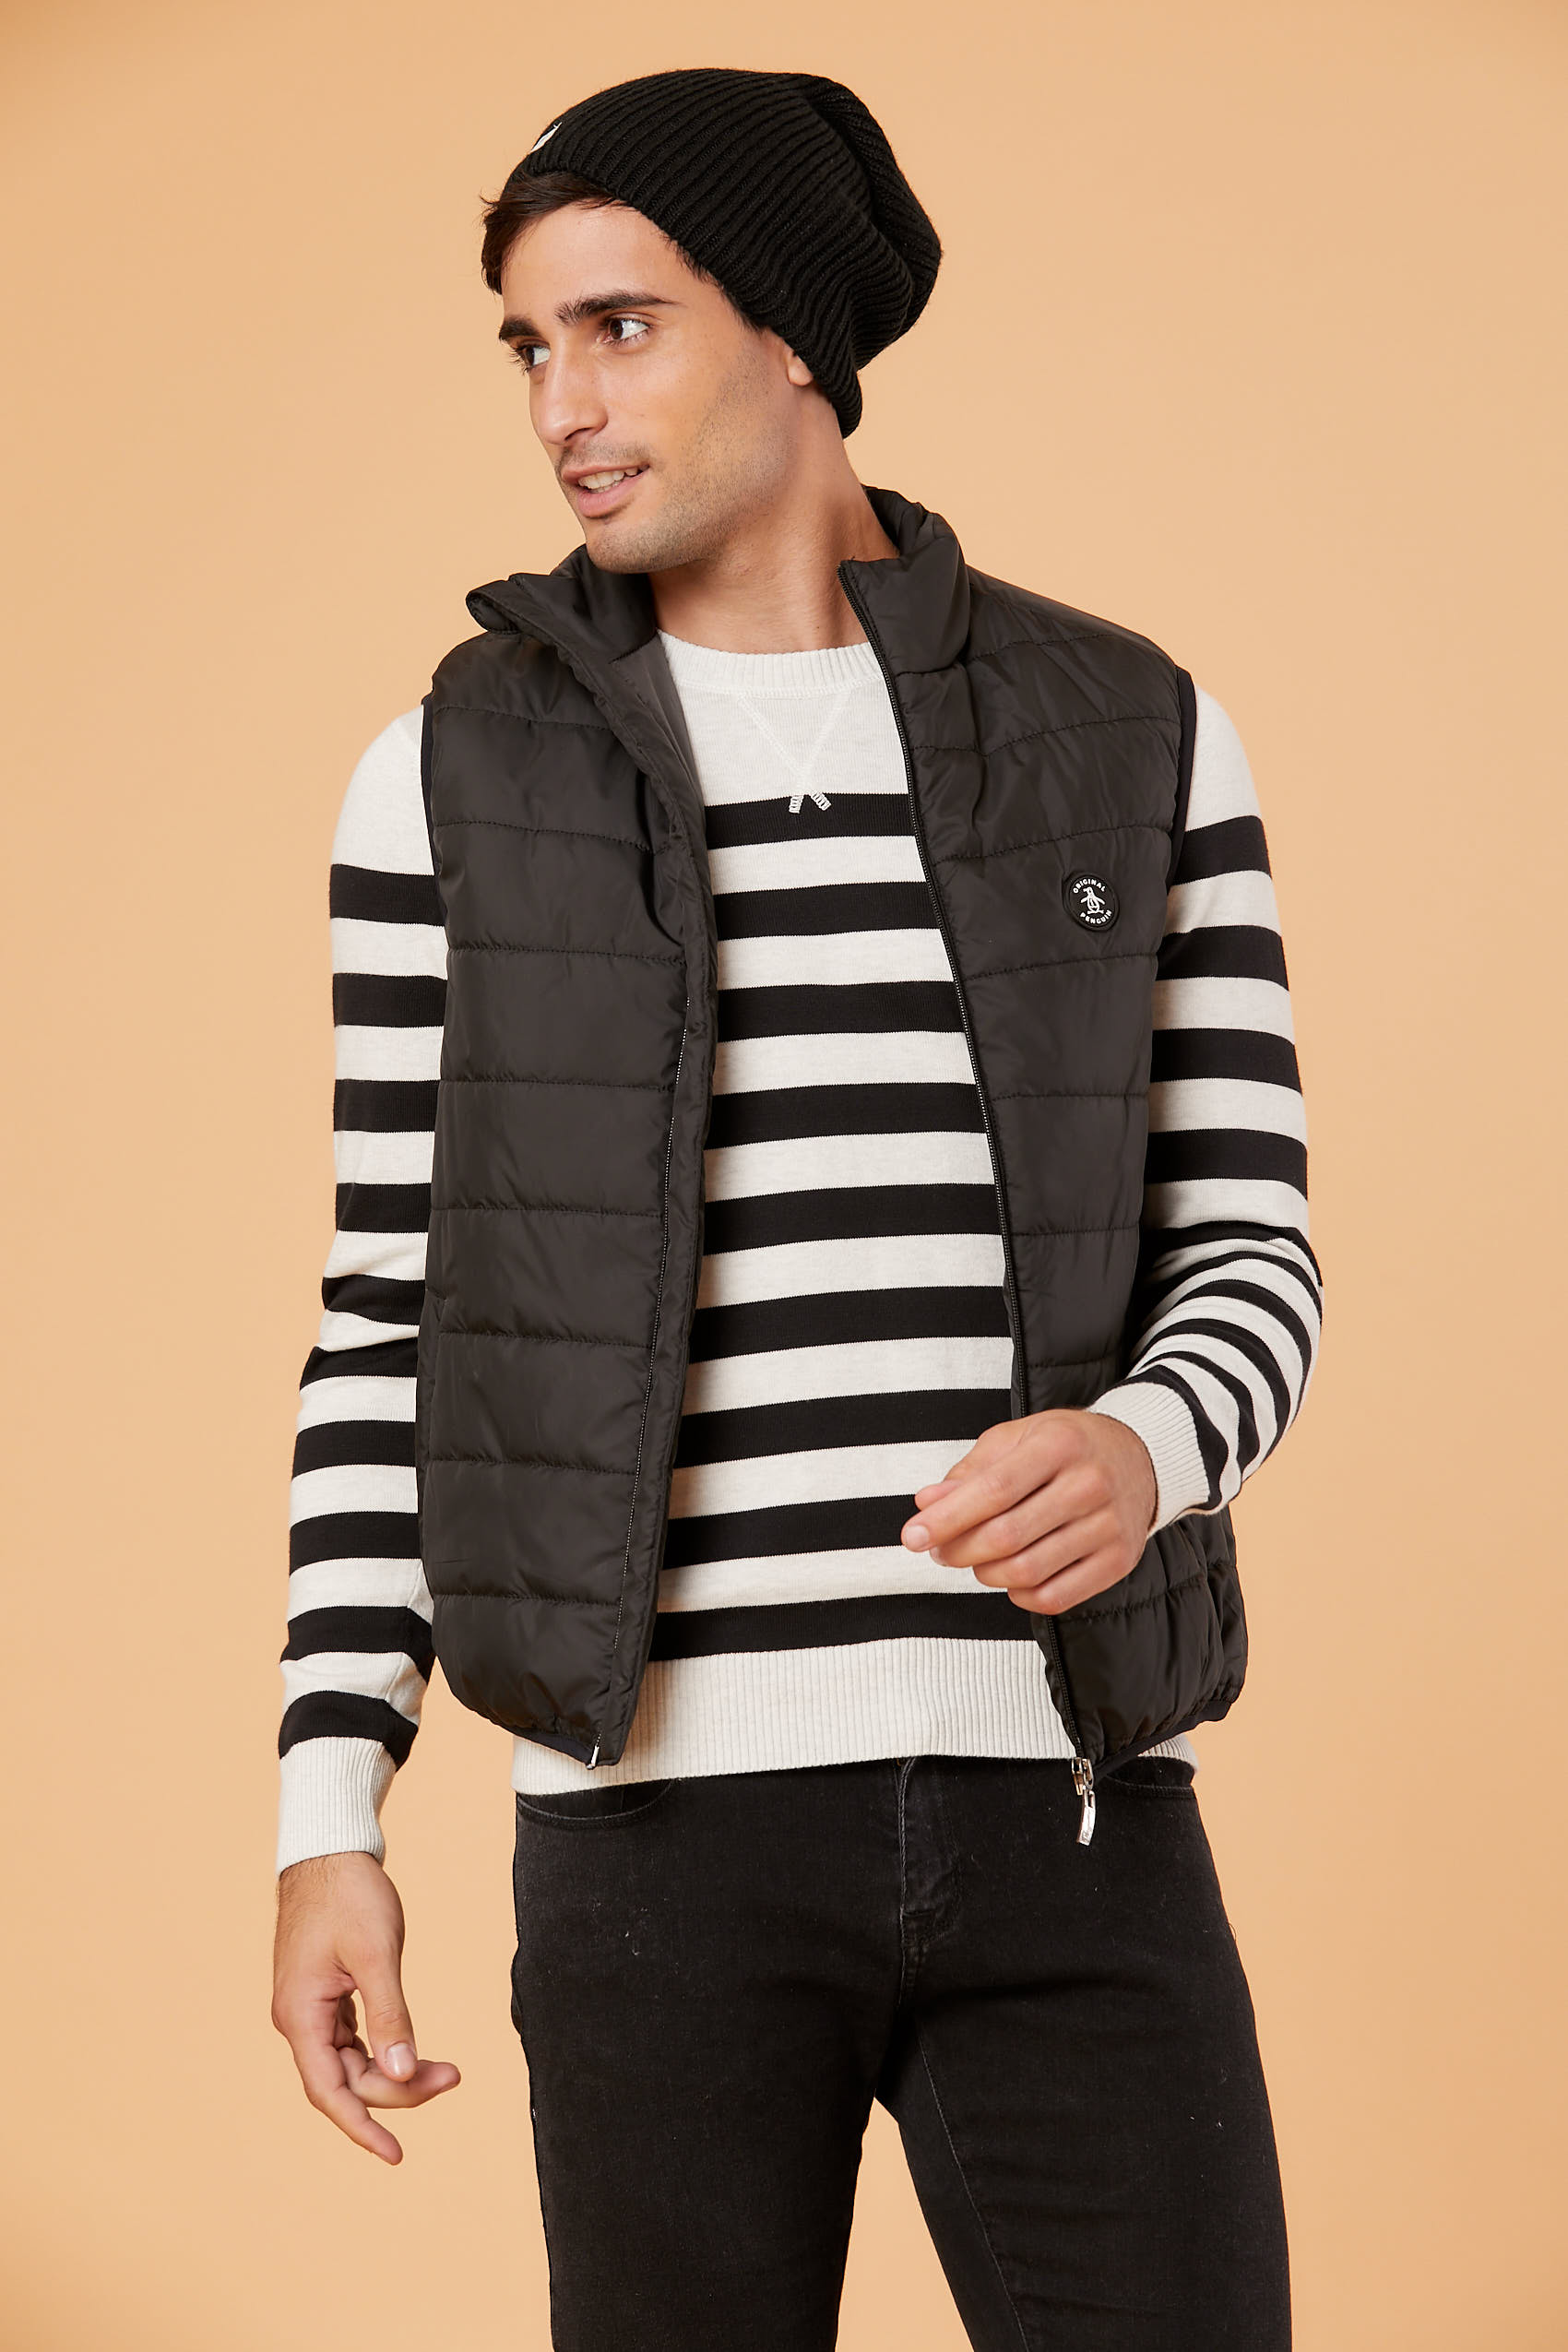 penguin_quilted-solid-vest_50-08-2021__picture-19304